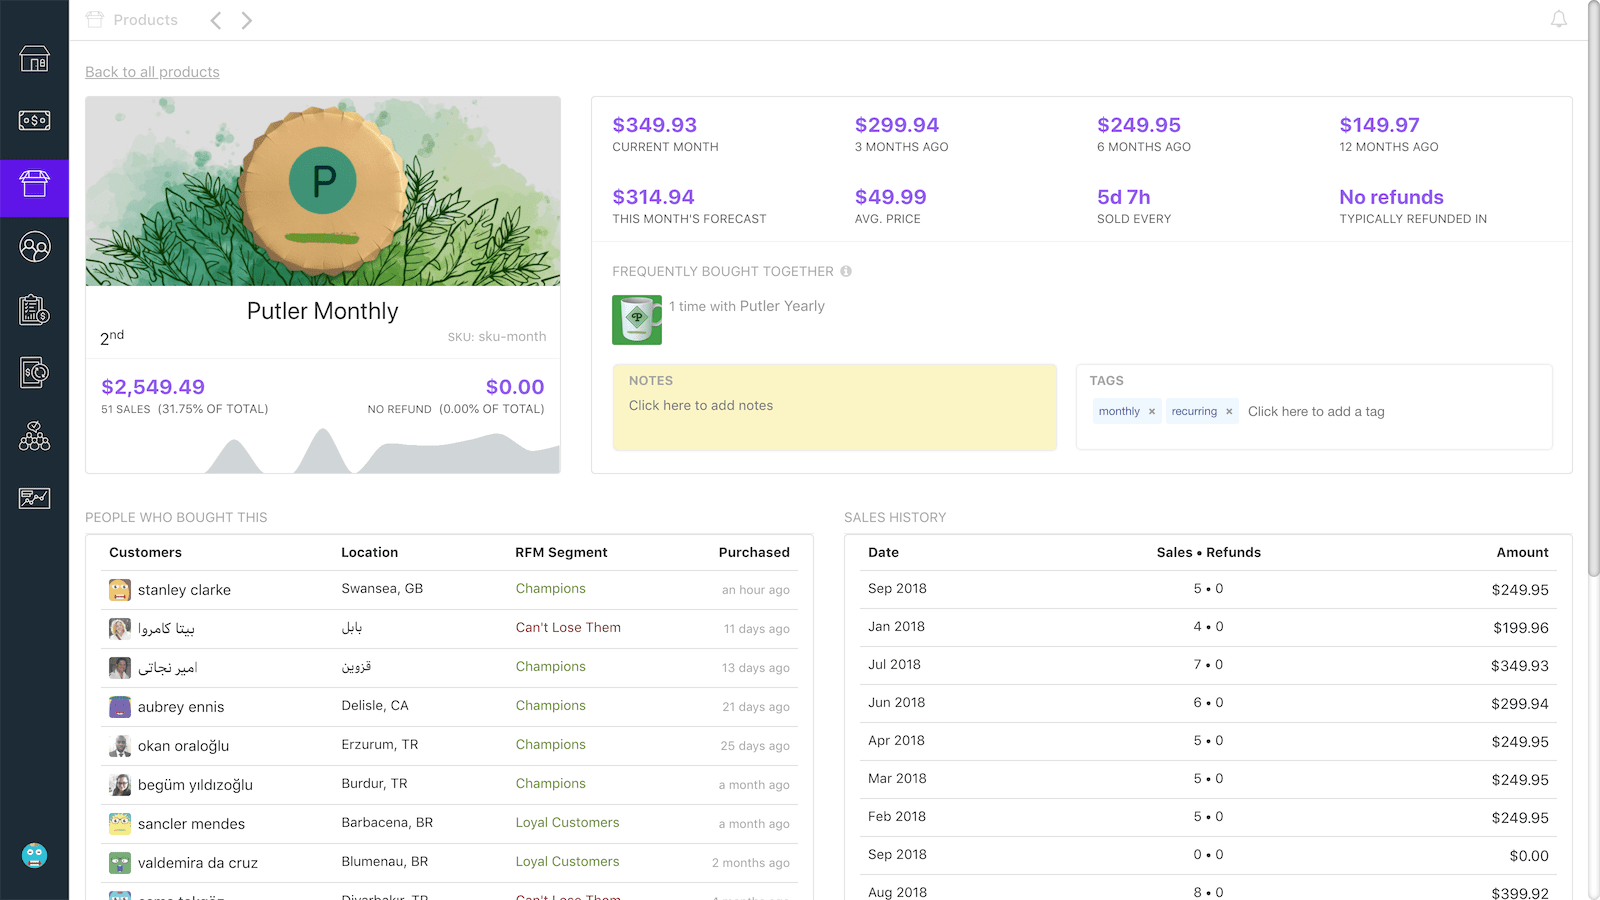 In-depth Product Analytics & Reports